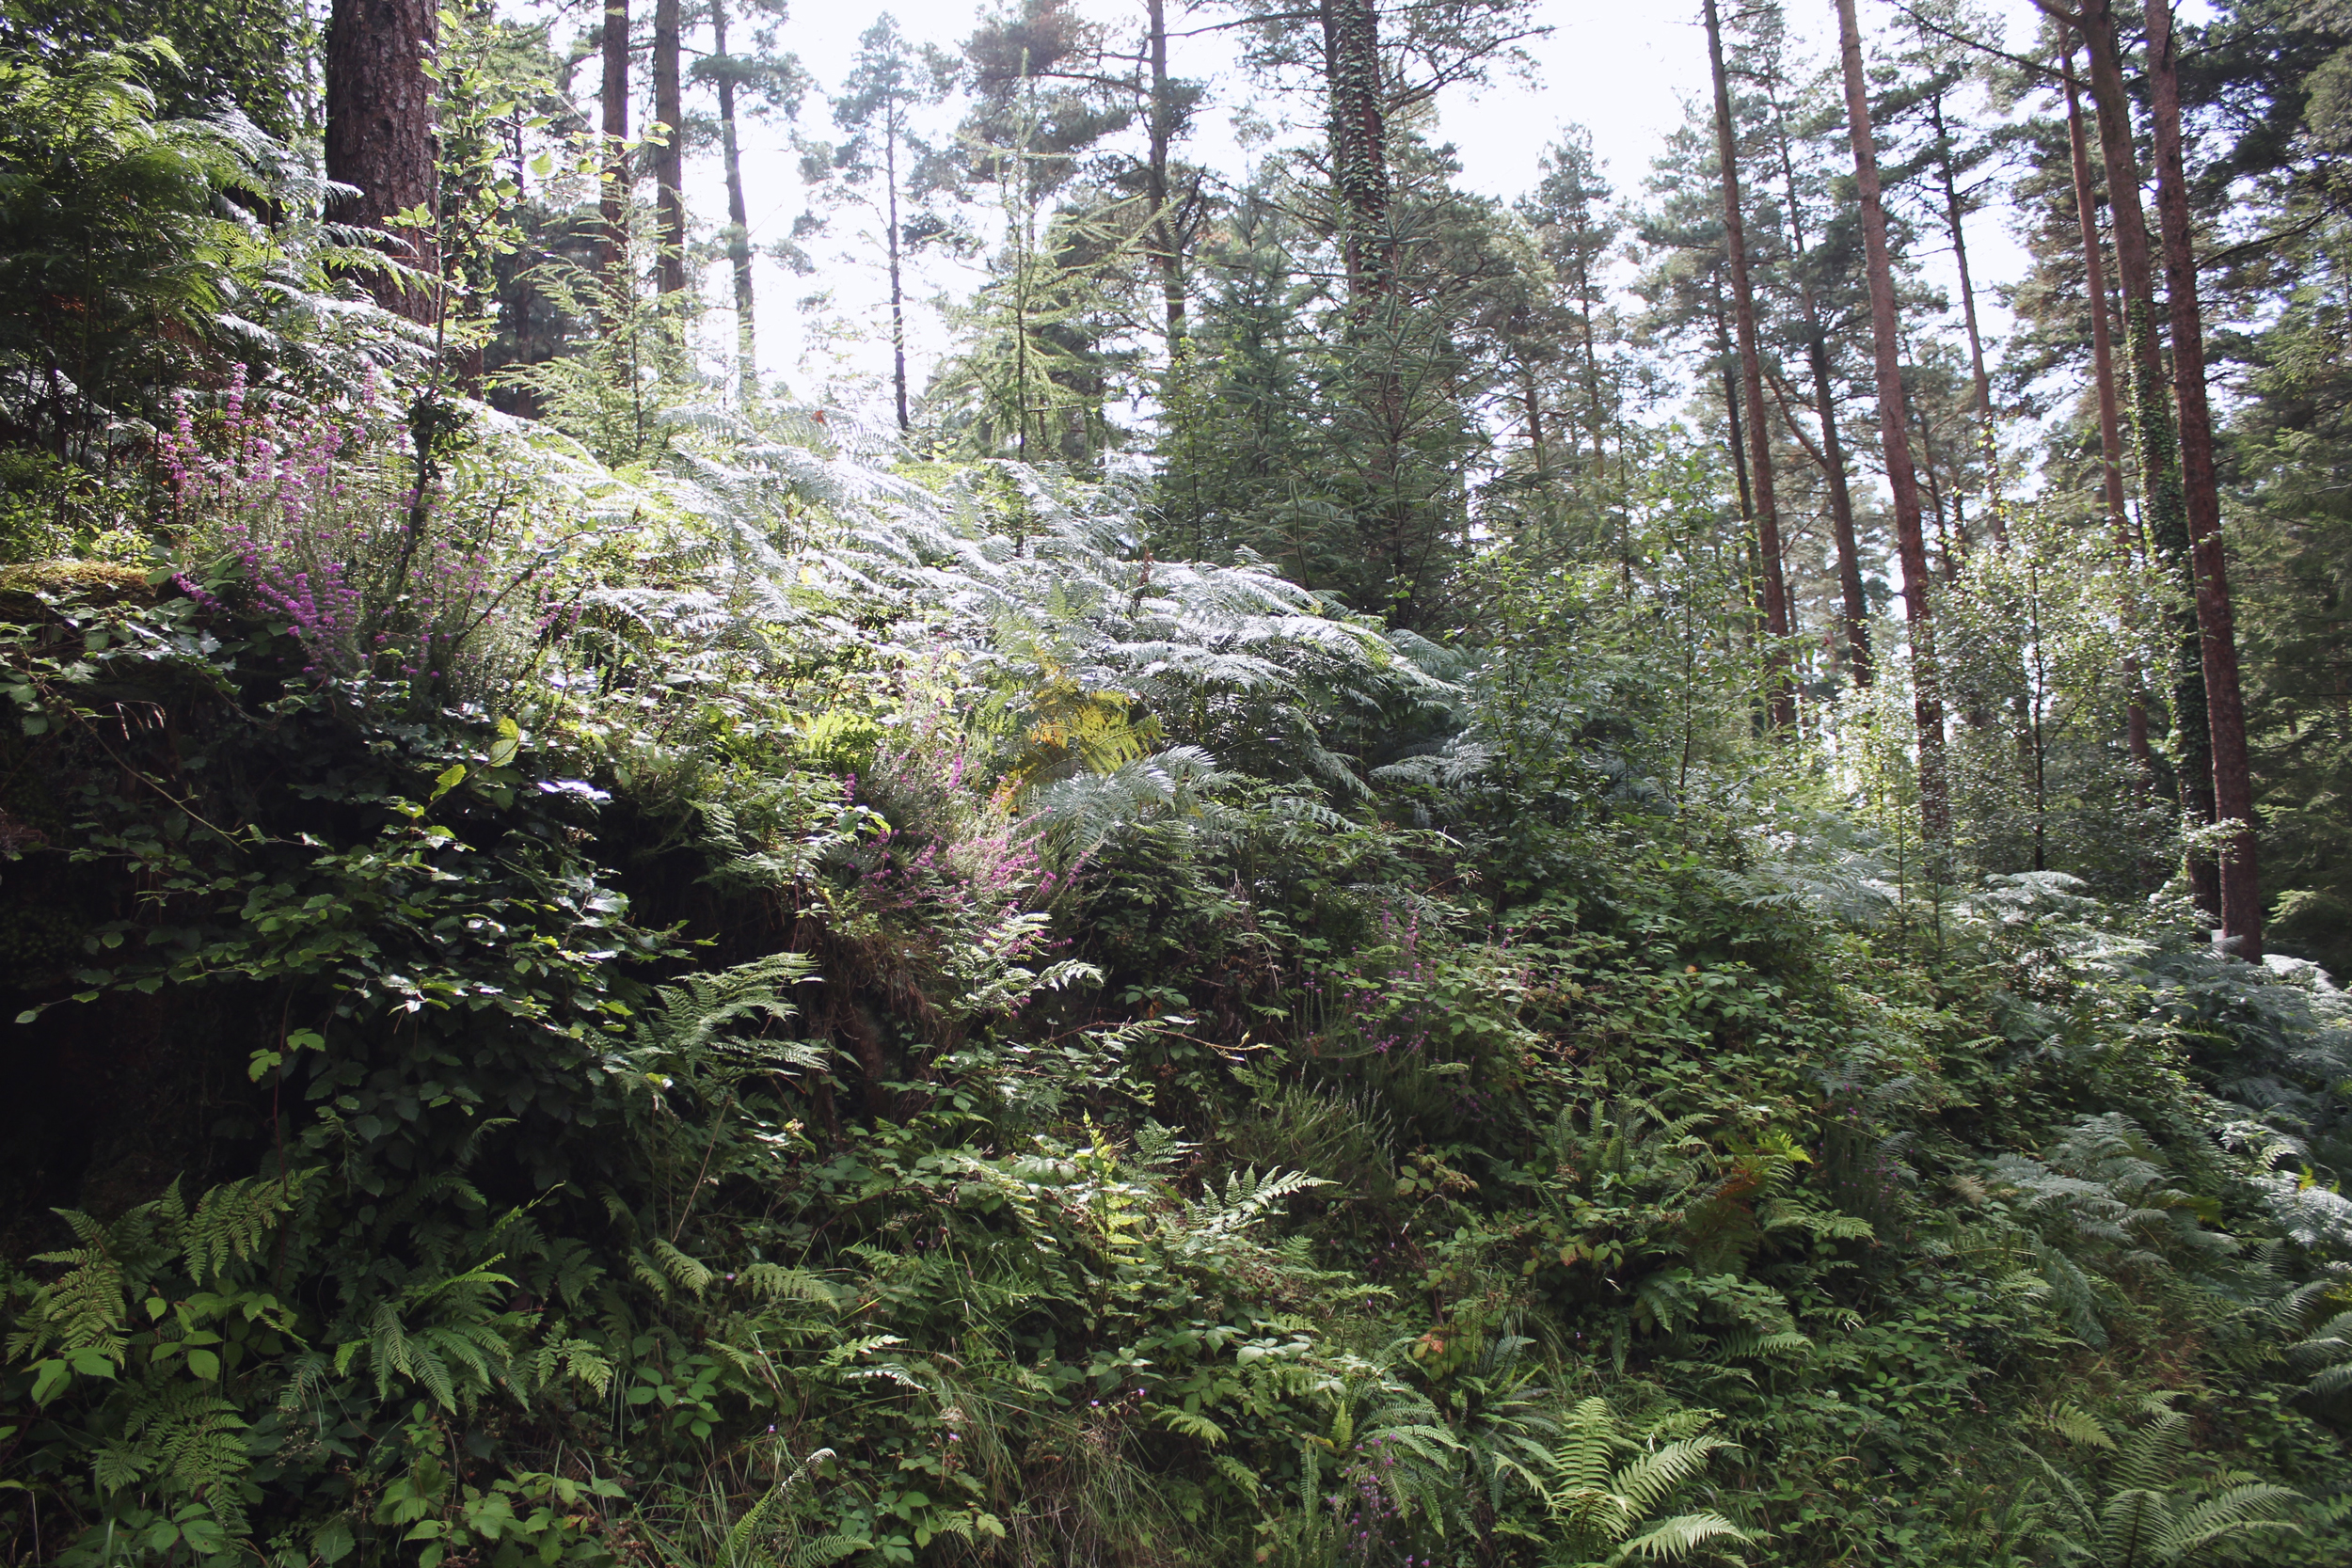 Hedgerow in the forest, Haldon Forest